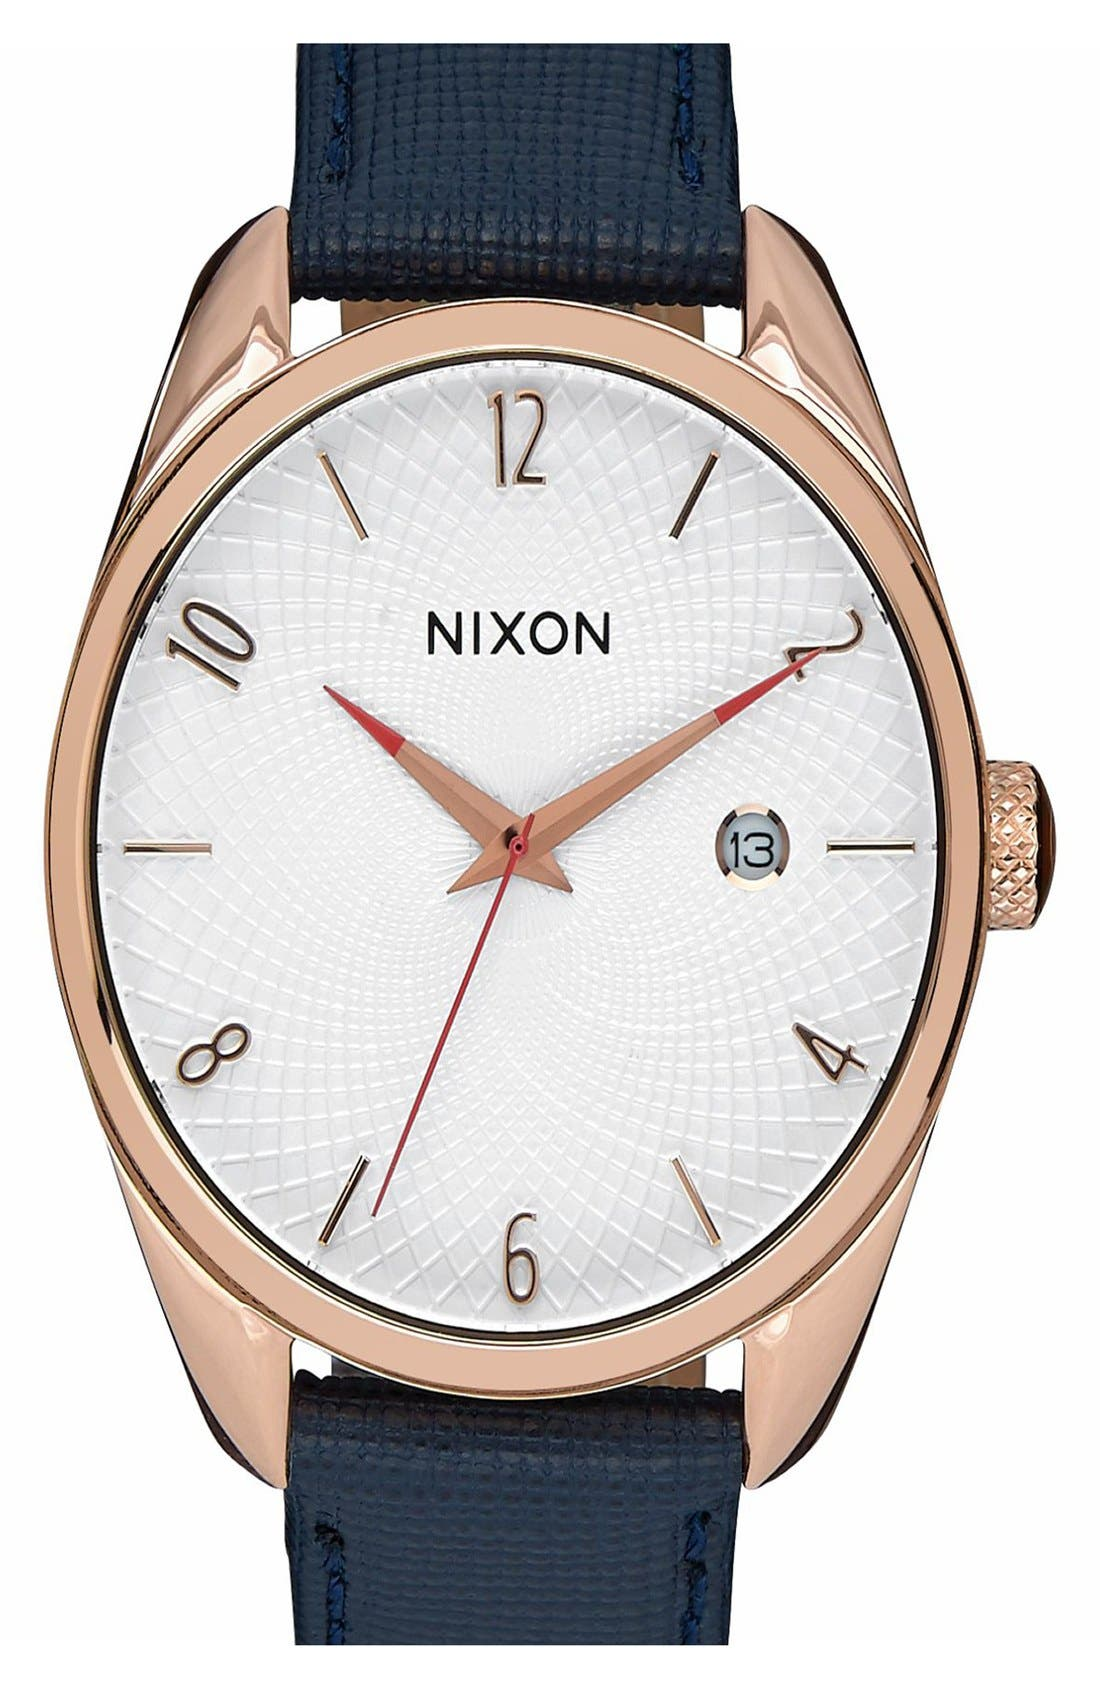 Nixon 'Bullet' Guilloche Dial Oval Leather Strap Watch, 38mm